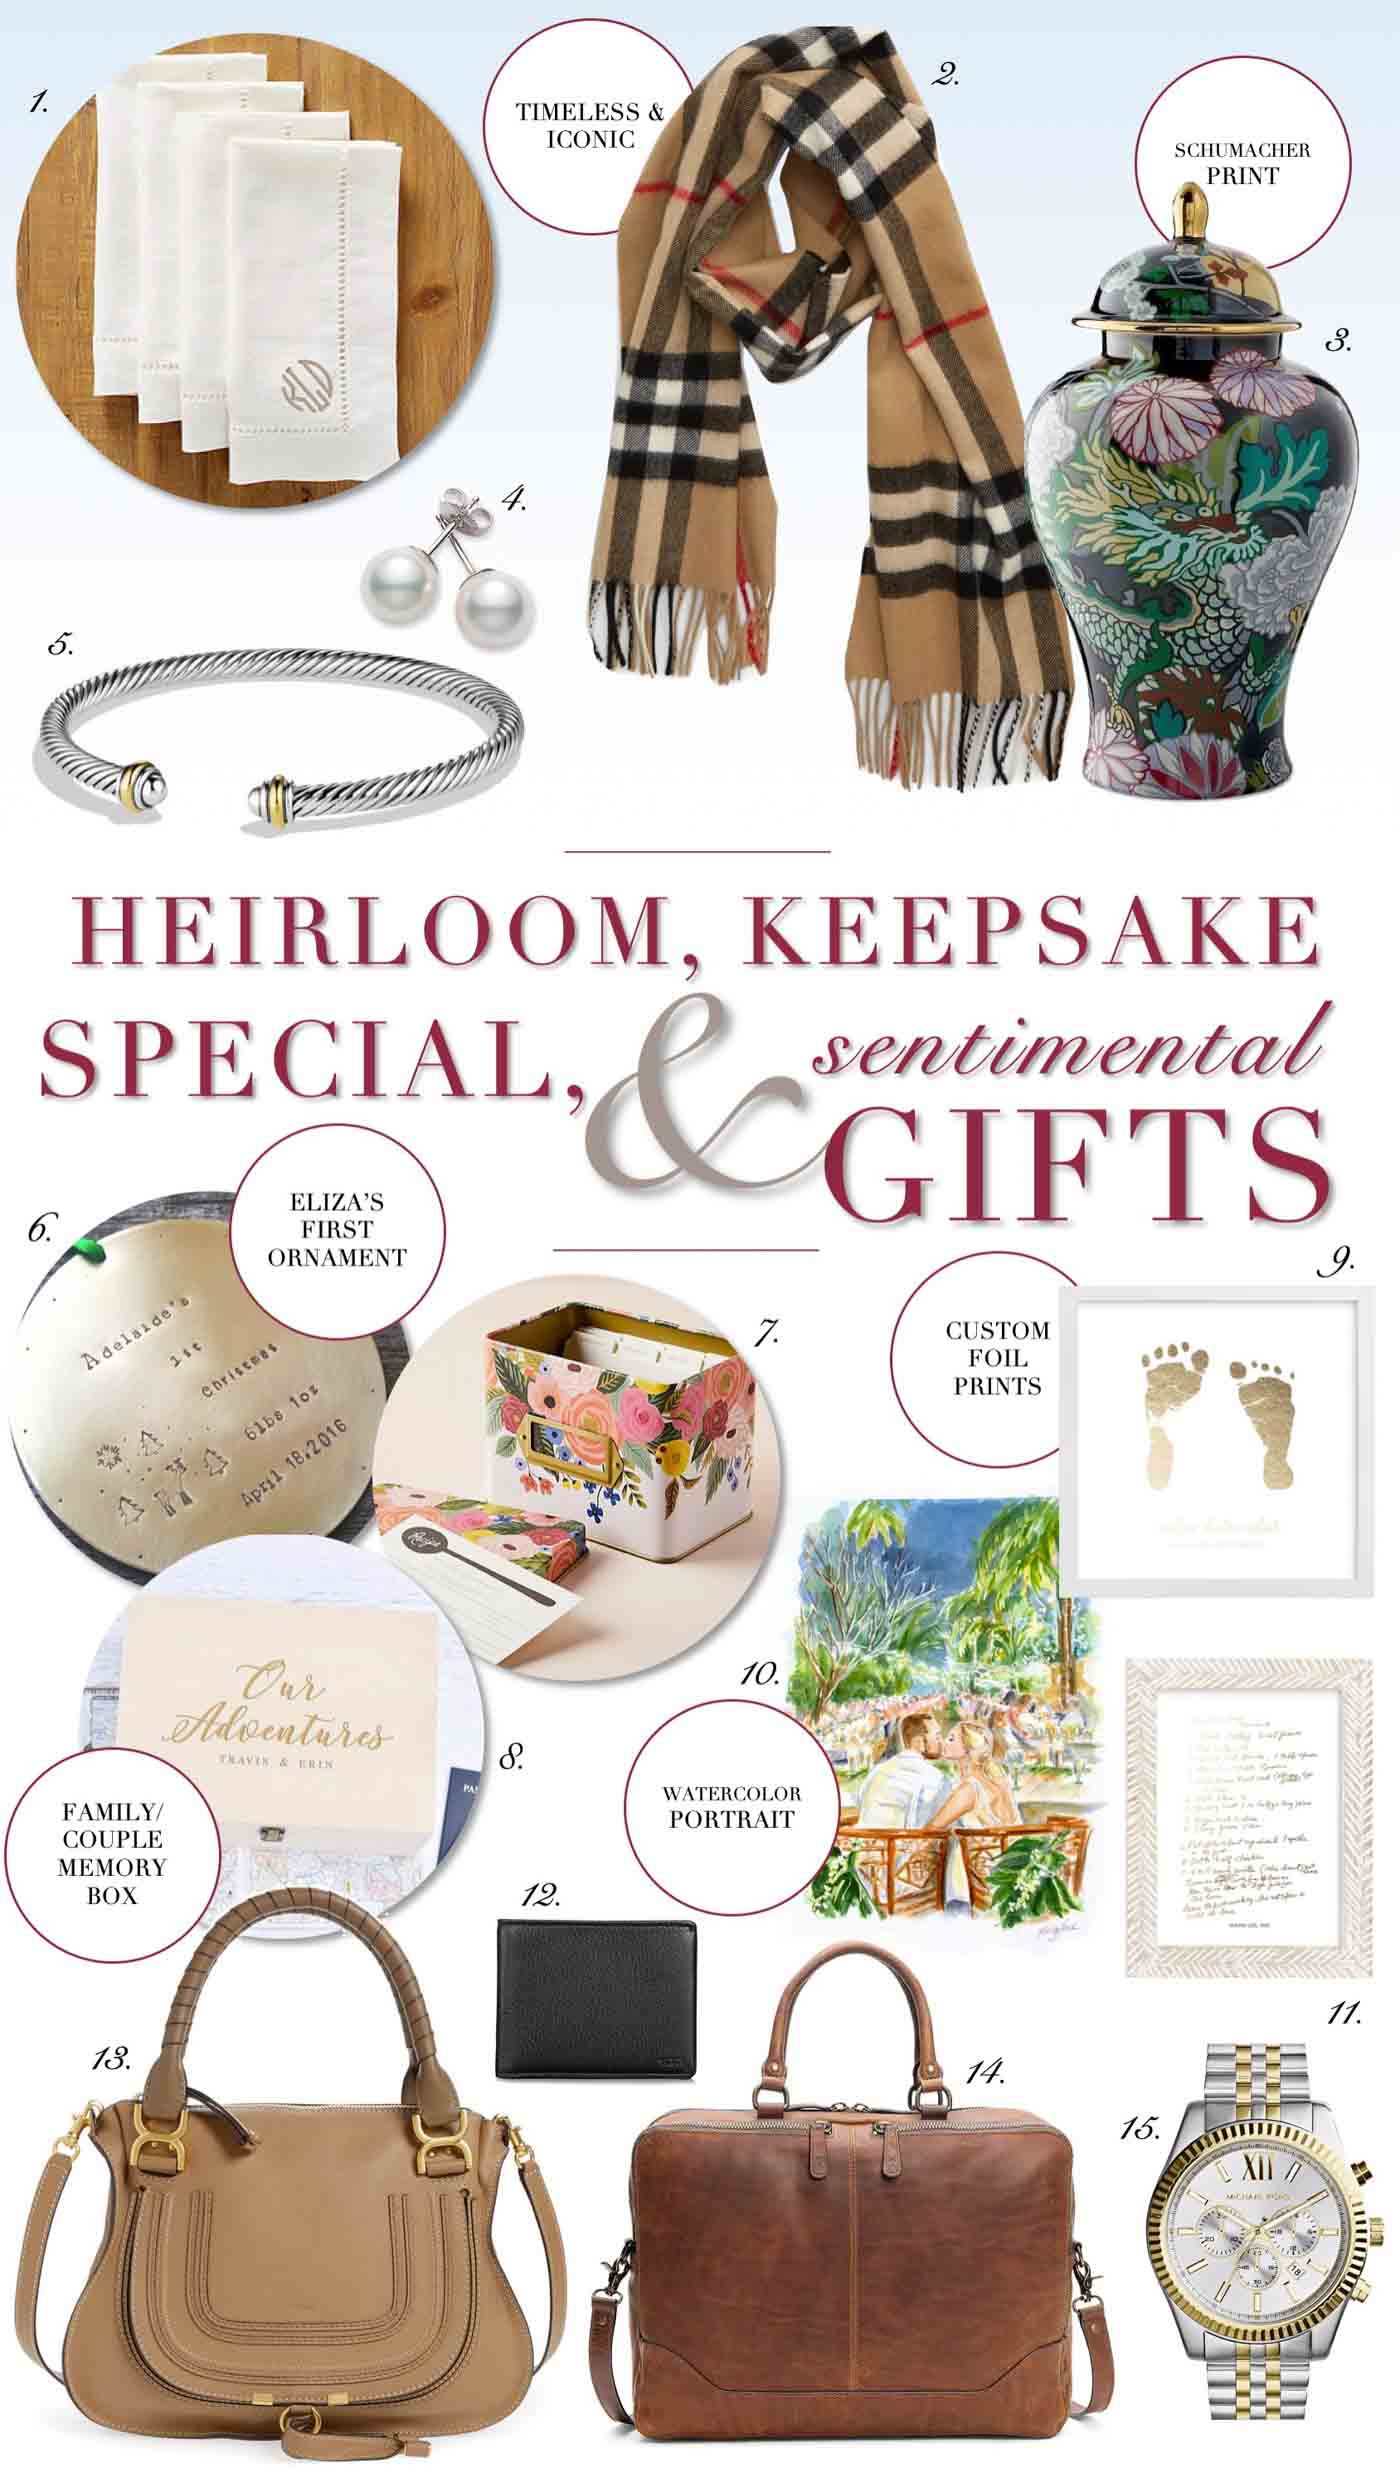 Keepsake and Heirloom Gift Ideas - for Christmas and Other Holidays